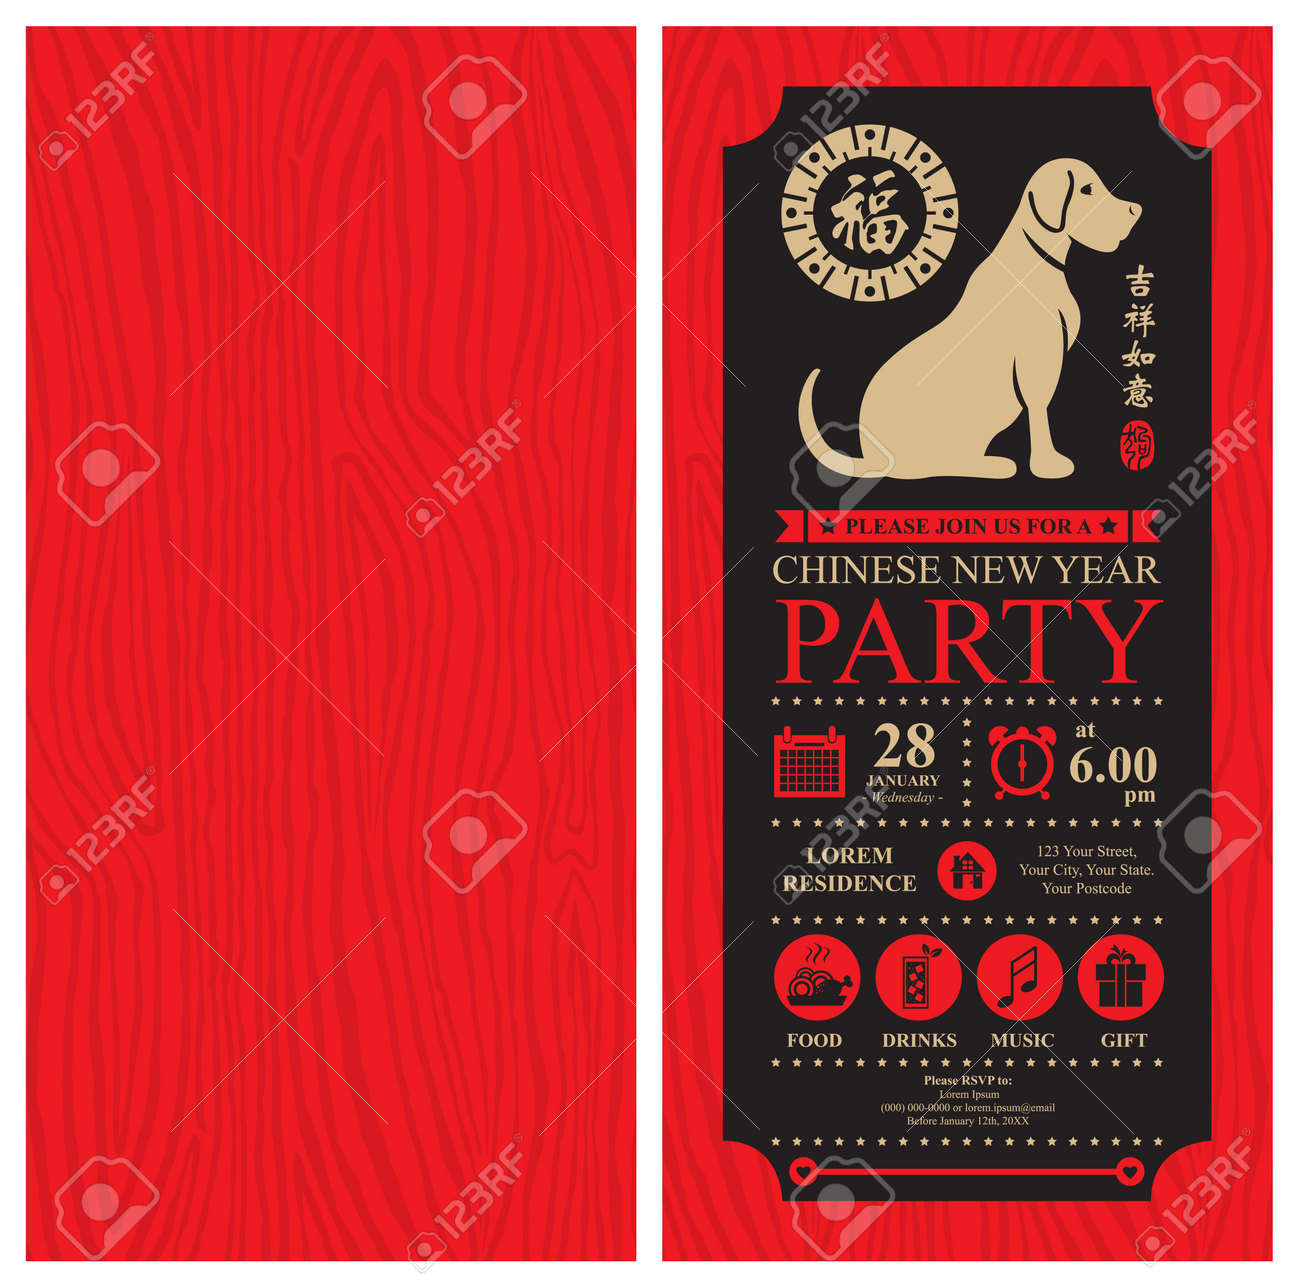 Chinese New Year Invitation Card Template Royalty Free Cliparts